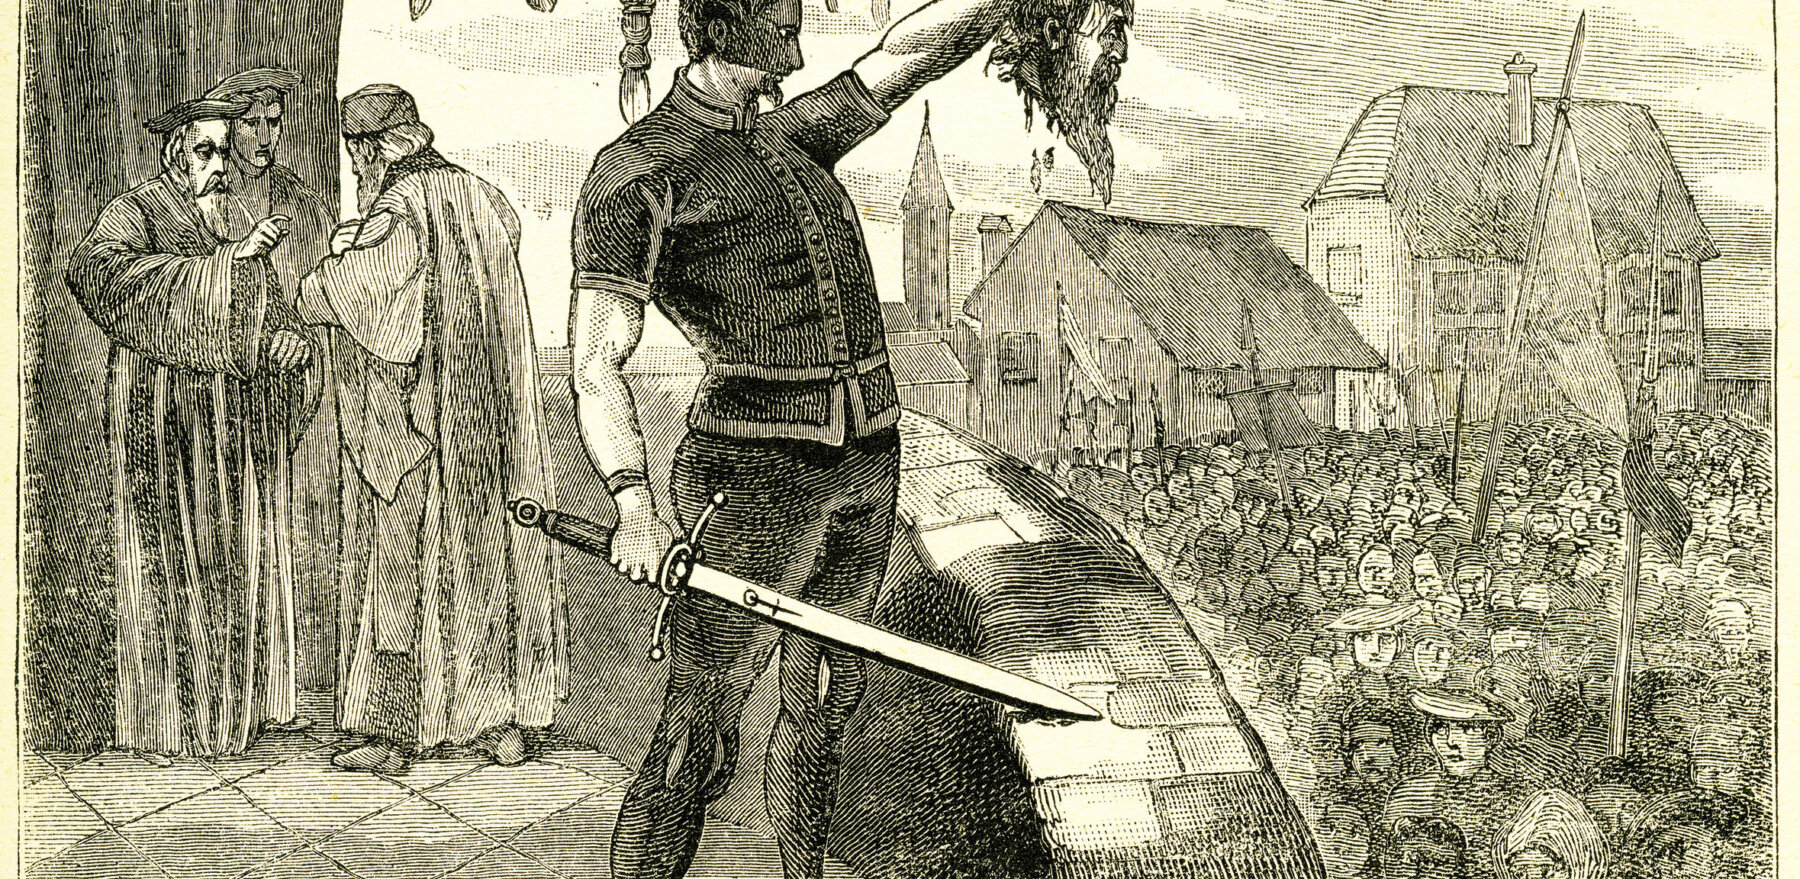 Engraving of an executioner holding up the head of a traitor. From an original engraving in the Boys of England magazine 1894.